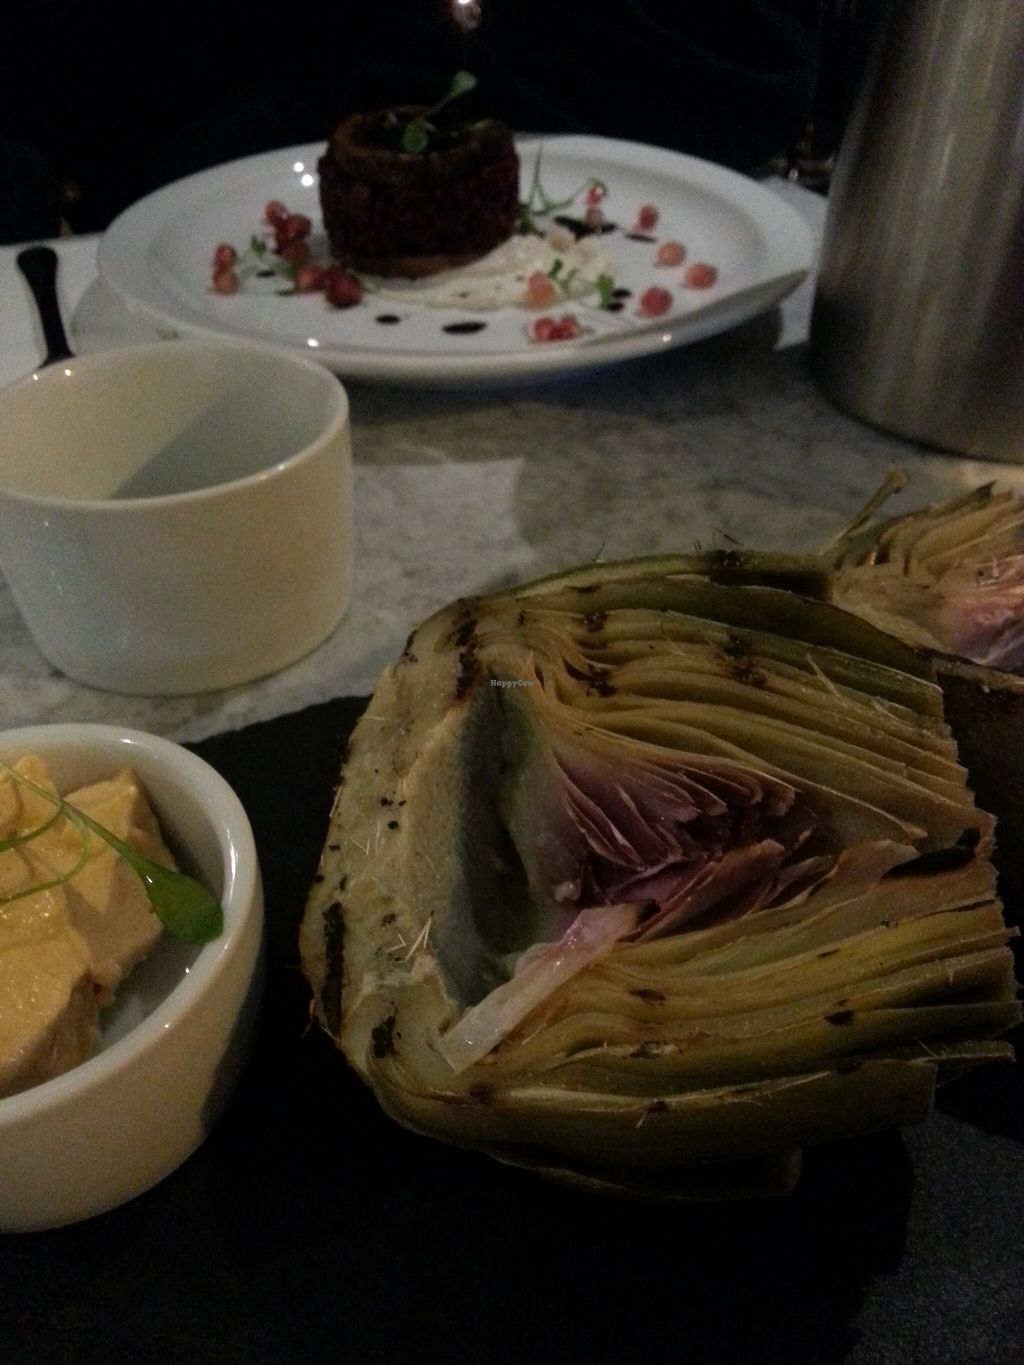 """Photo of CLOSED: 1847  by <a href=""""/members/profile/Miggi"""">Miggi</a> <br/>Artichoke with smoked vegan 'butter' <br/> January 4, 2016  - <a href='/contact/abuse/image/65957/131065'>Report</a>"""